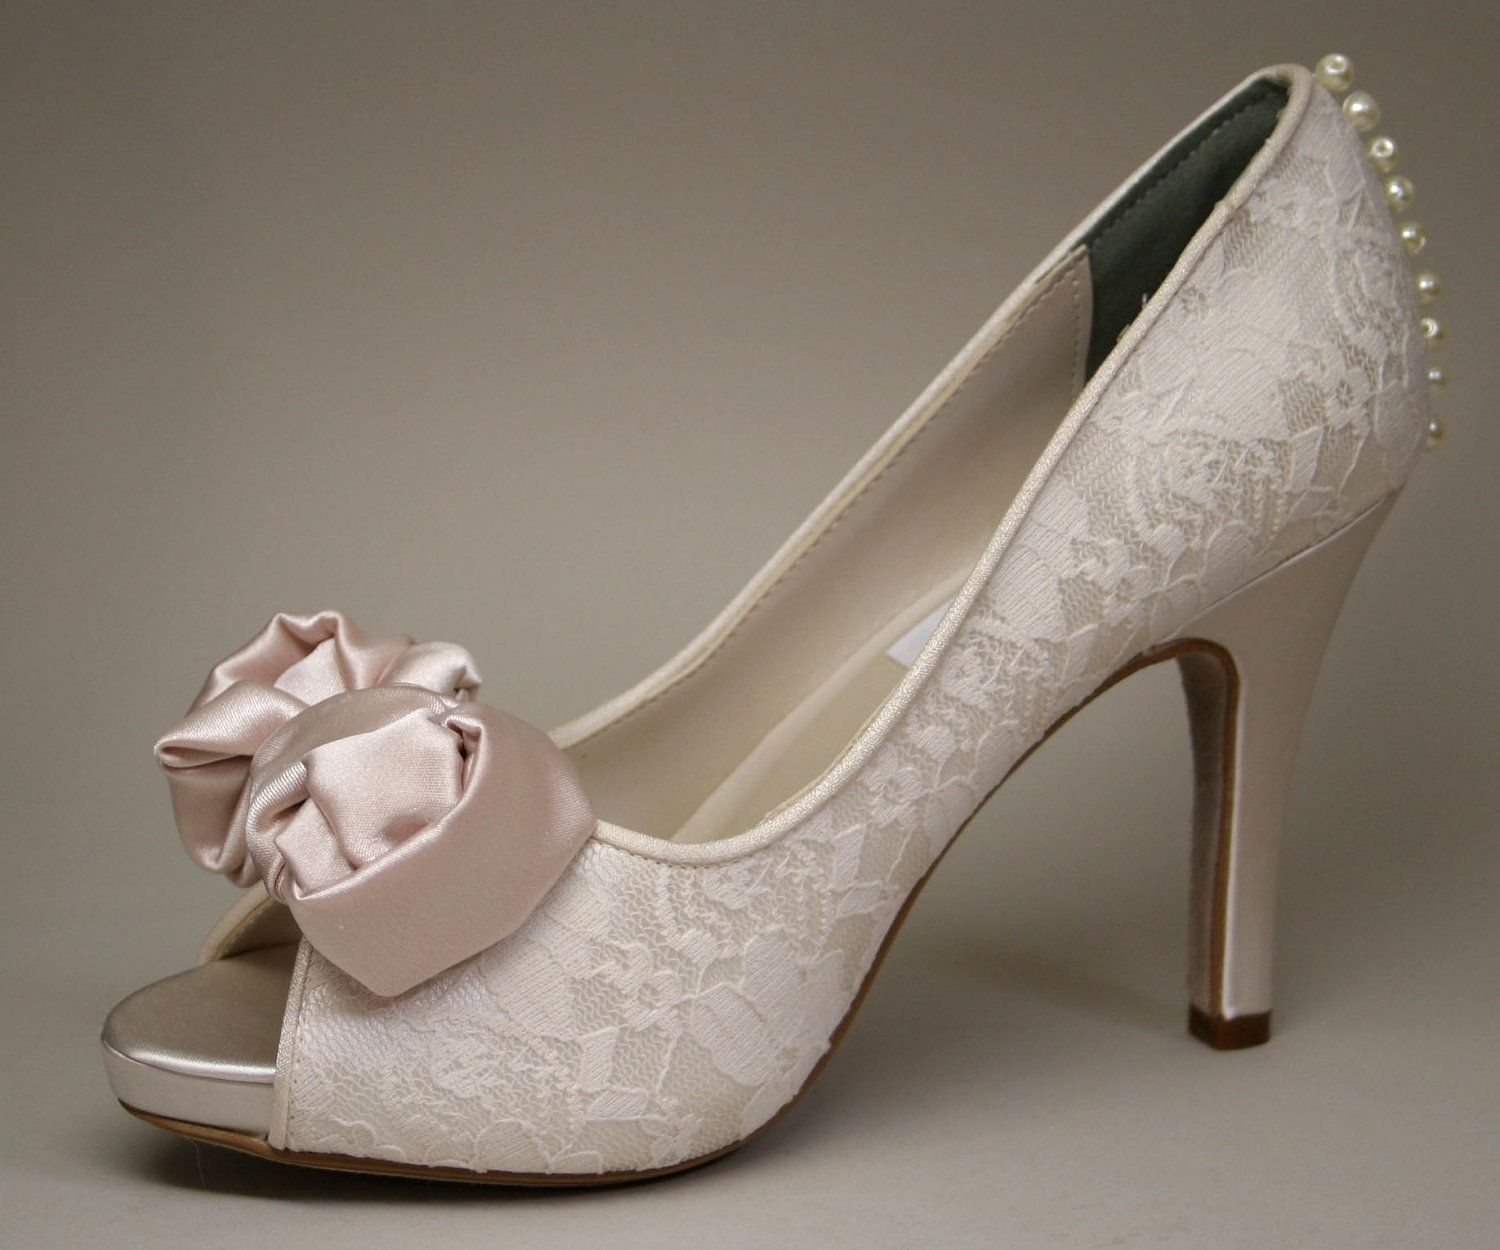 Wedding Shoes Ivory Peeptoes With Lace Overlay Blush Bow And Pearl Details